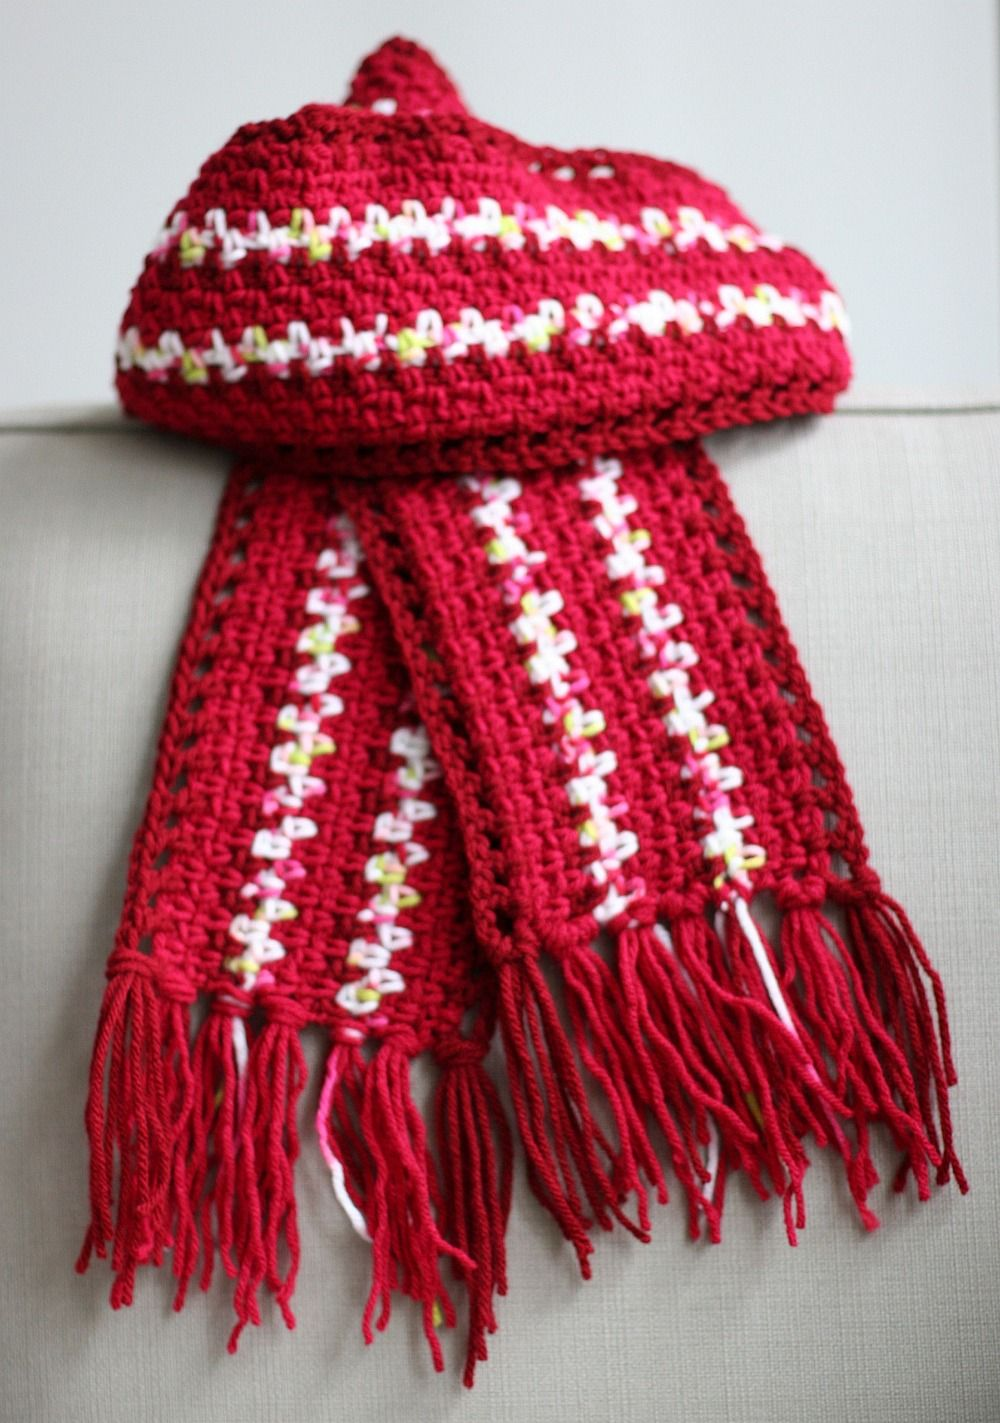 Crocheted Men\'s Scarf Pattern | Crochet - Hats, Headbands, & Scarves ...